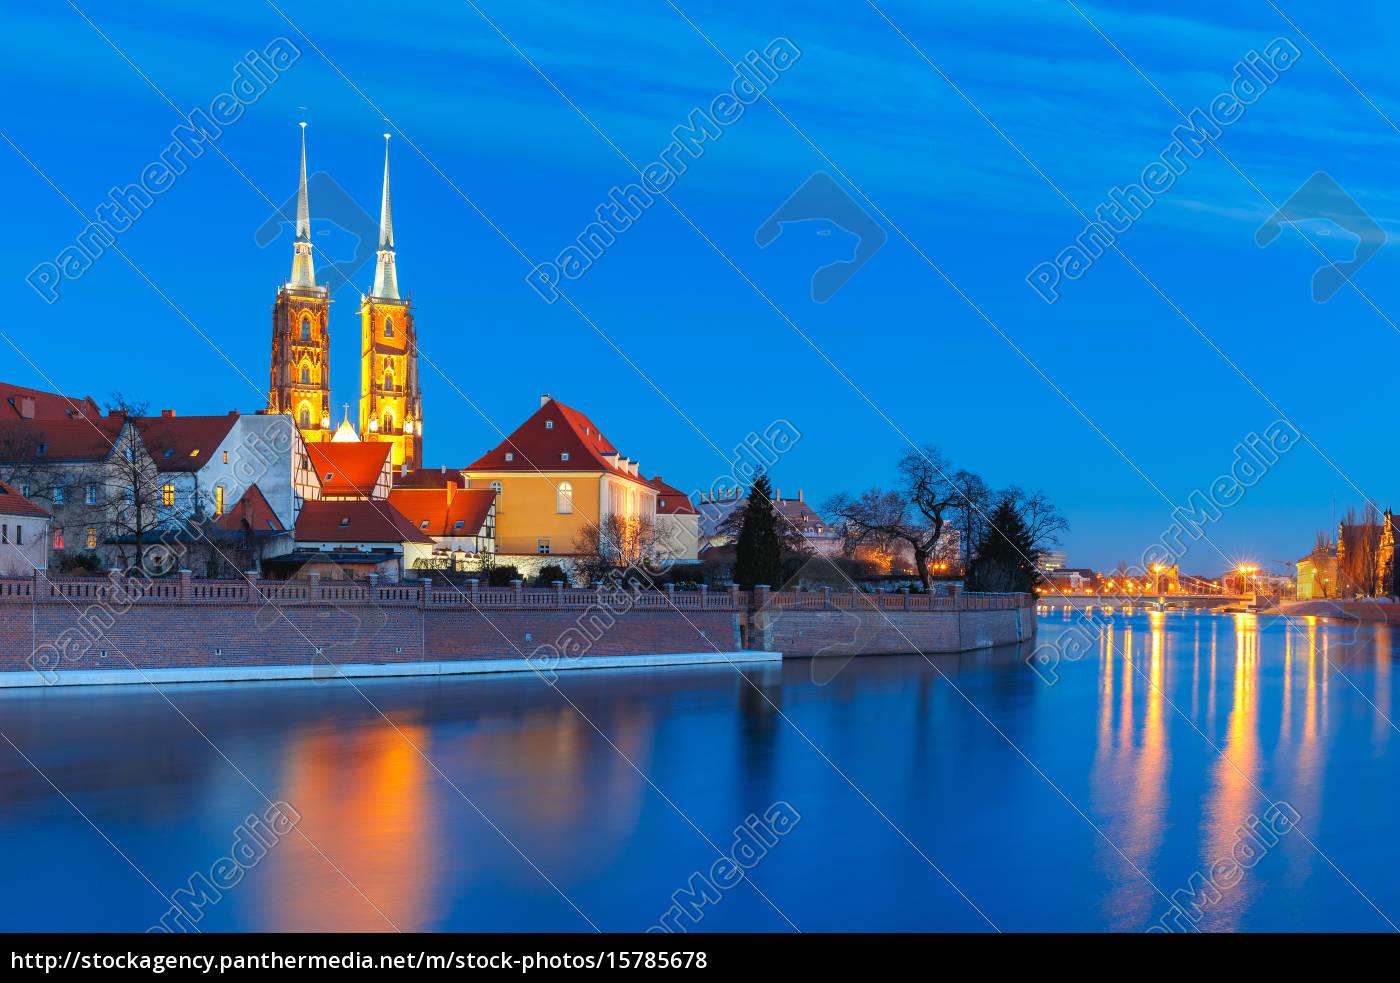 cathedral, island, at, night, in, wroclaw, - 15785678